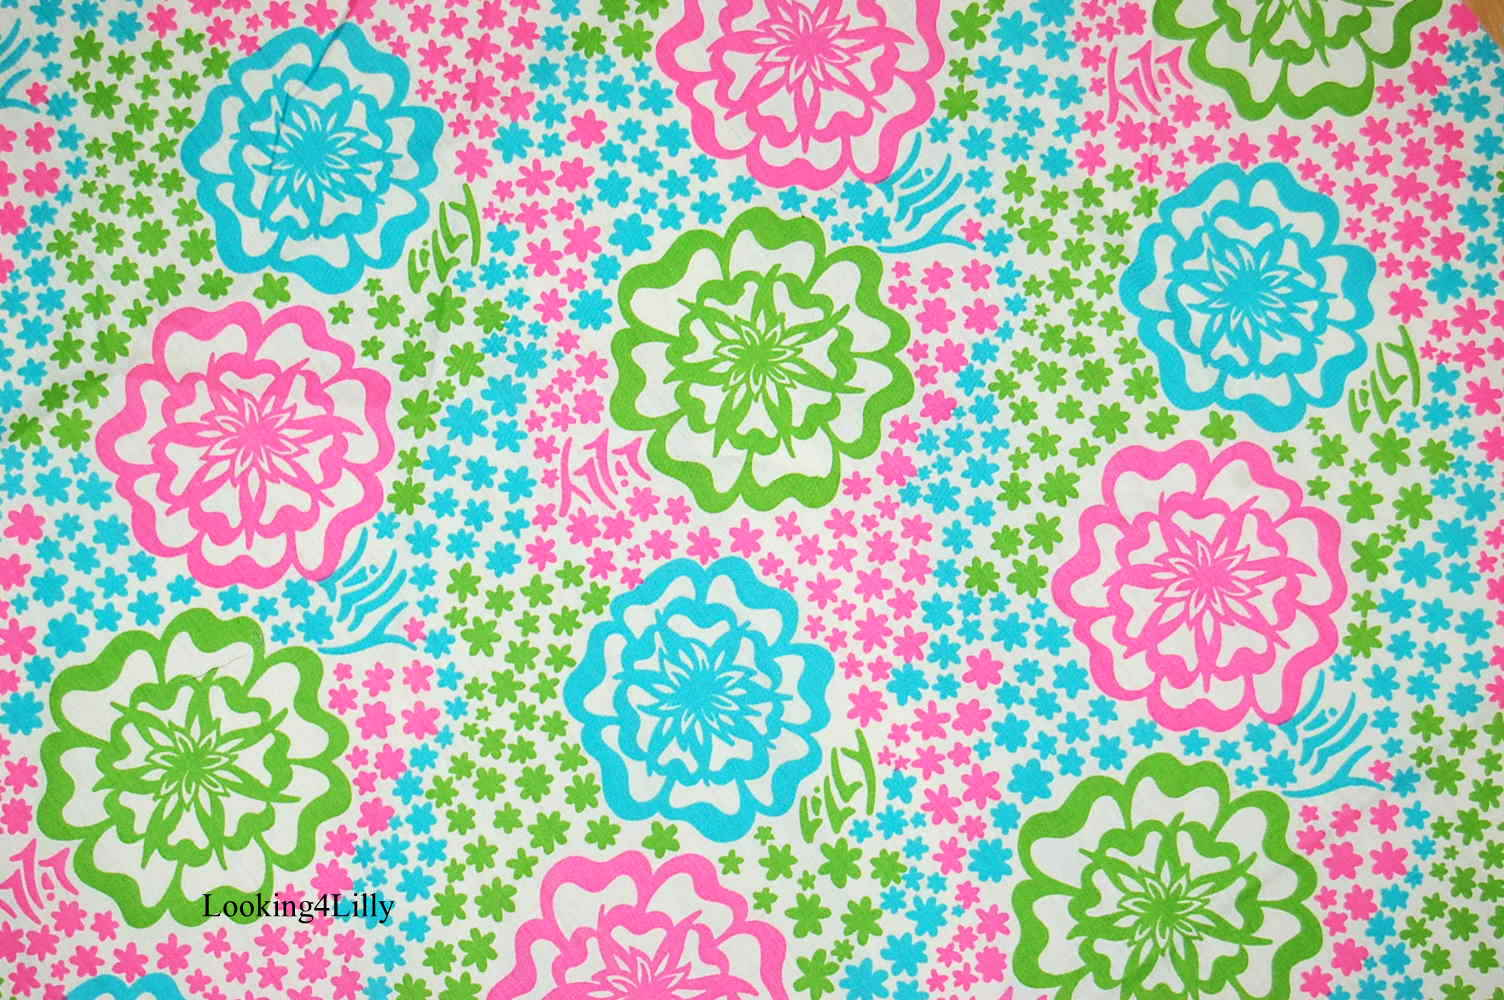 Cute Anchor Wallpapers Looking4lilly Vintage Lilly Pulitzer Fabric Prints